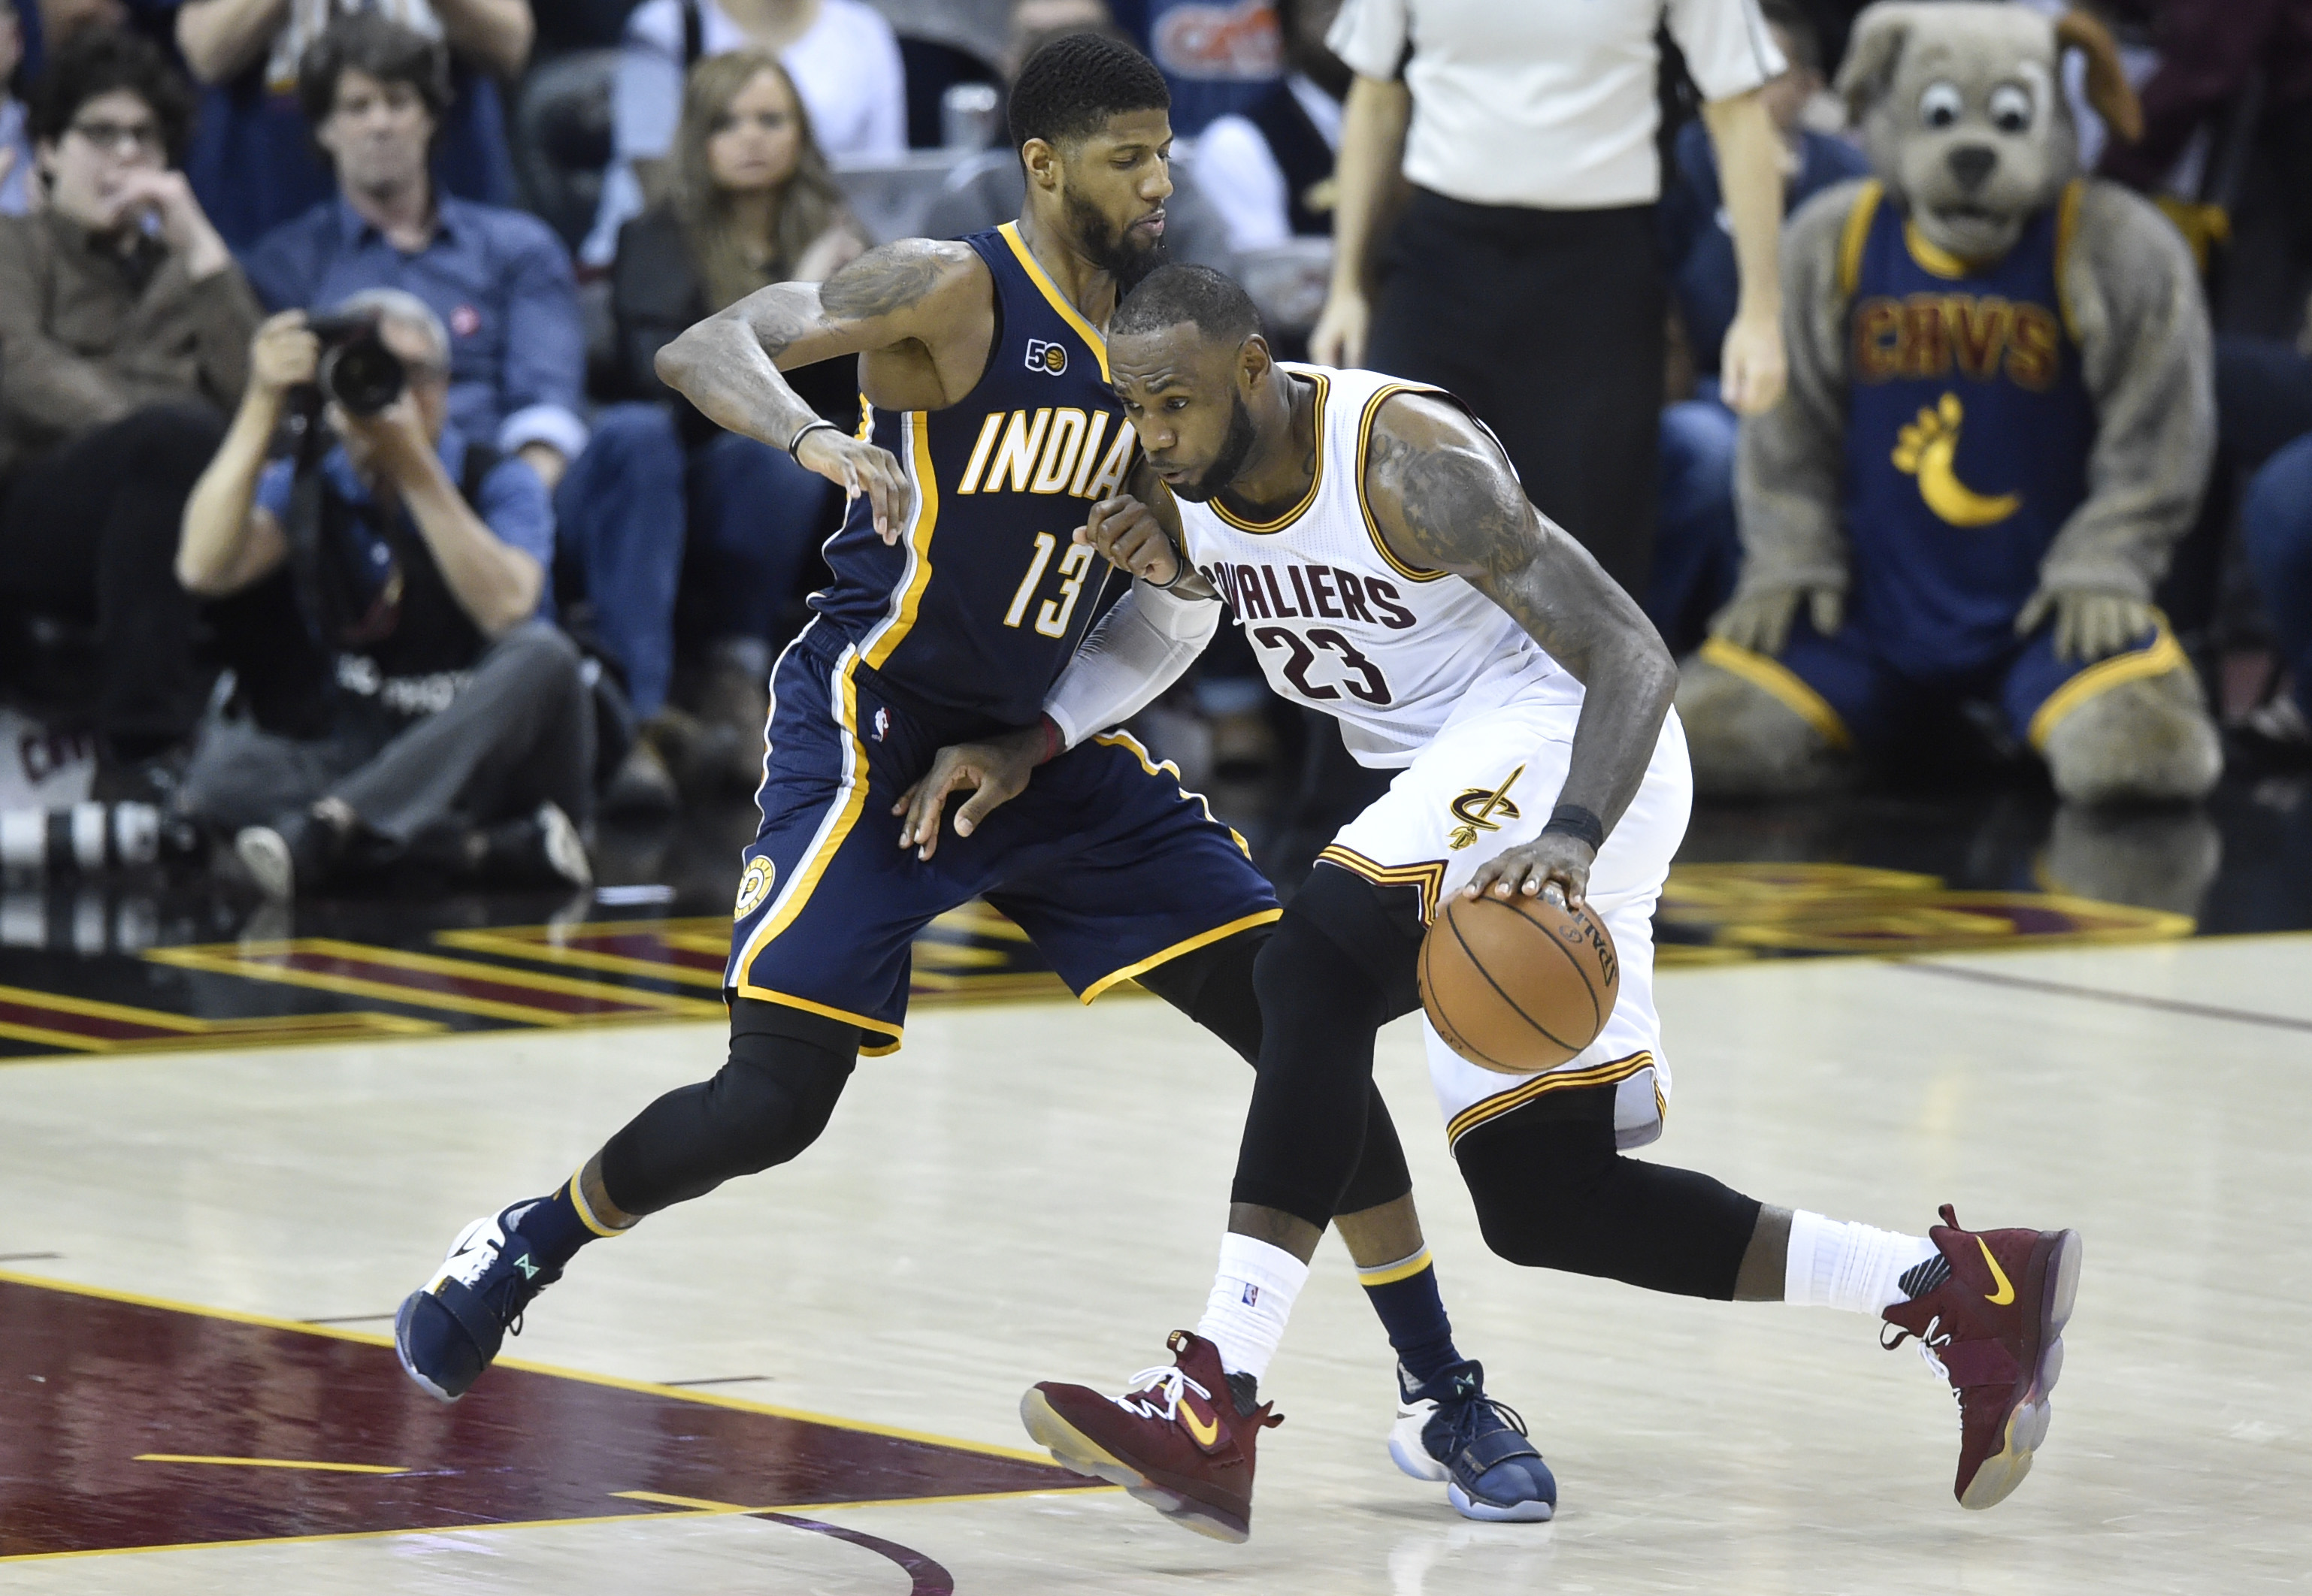 pacers vs cavaliers - photo #28